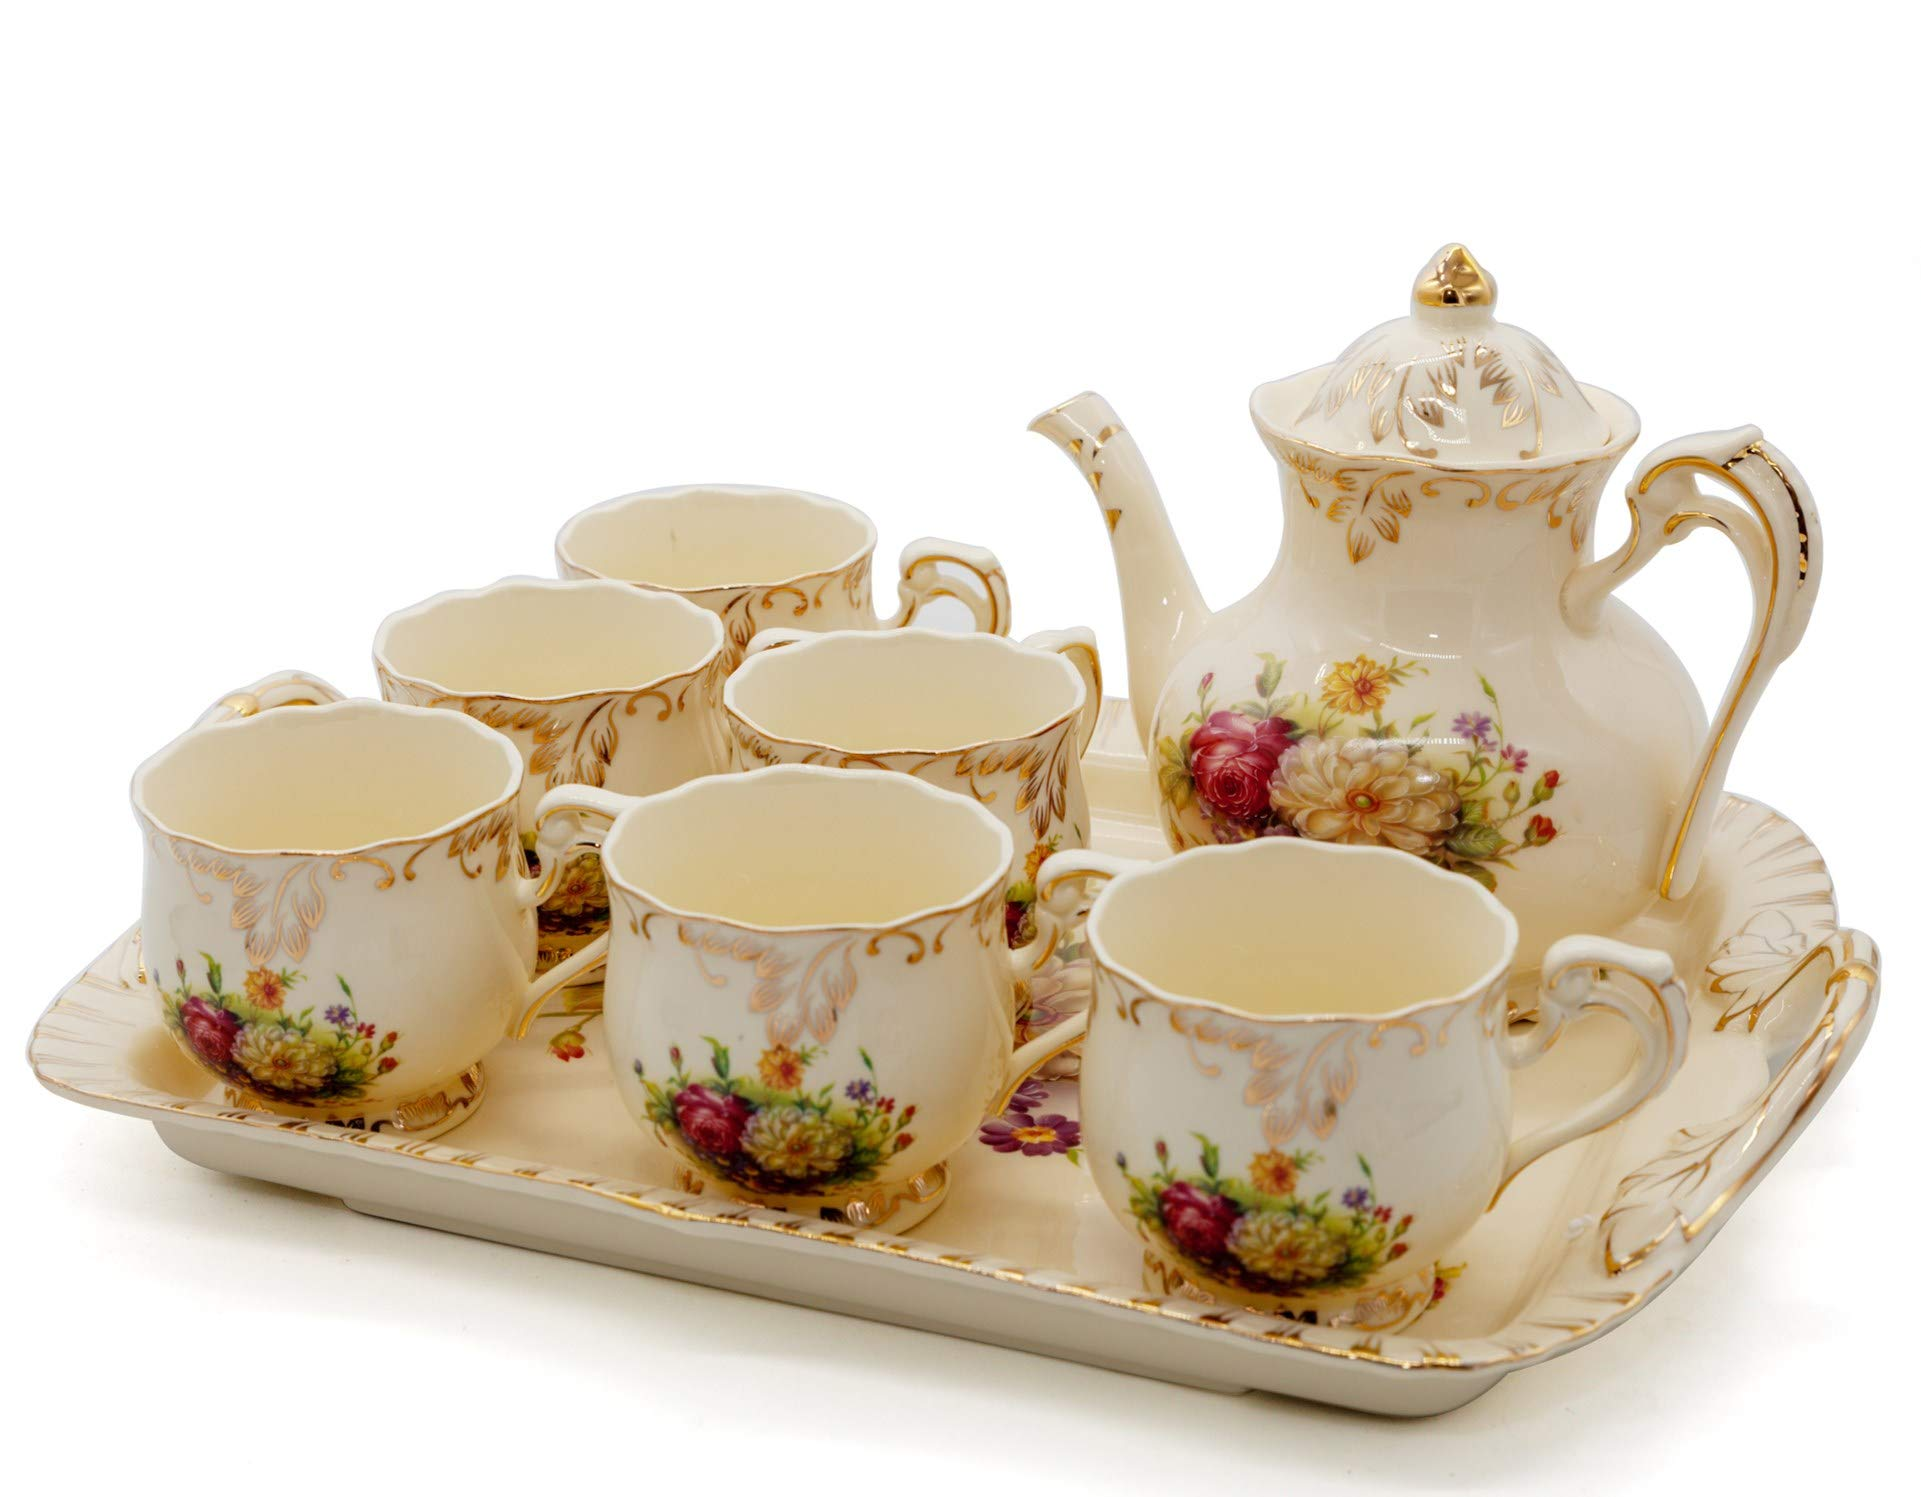 NEWQZ Coffee Set, Tea Set, Teapot Set -8 pcs Includes 6 Cup, 1 Coffee Pot, 1 Tray for Wedding,Party, Evening Dinner